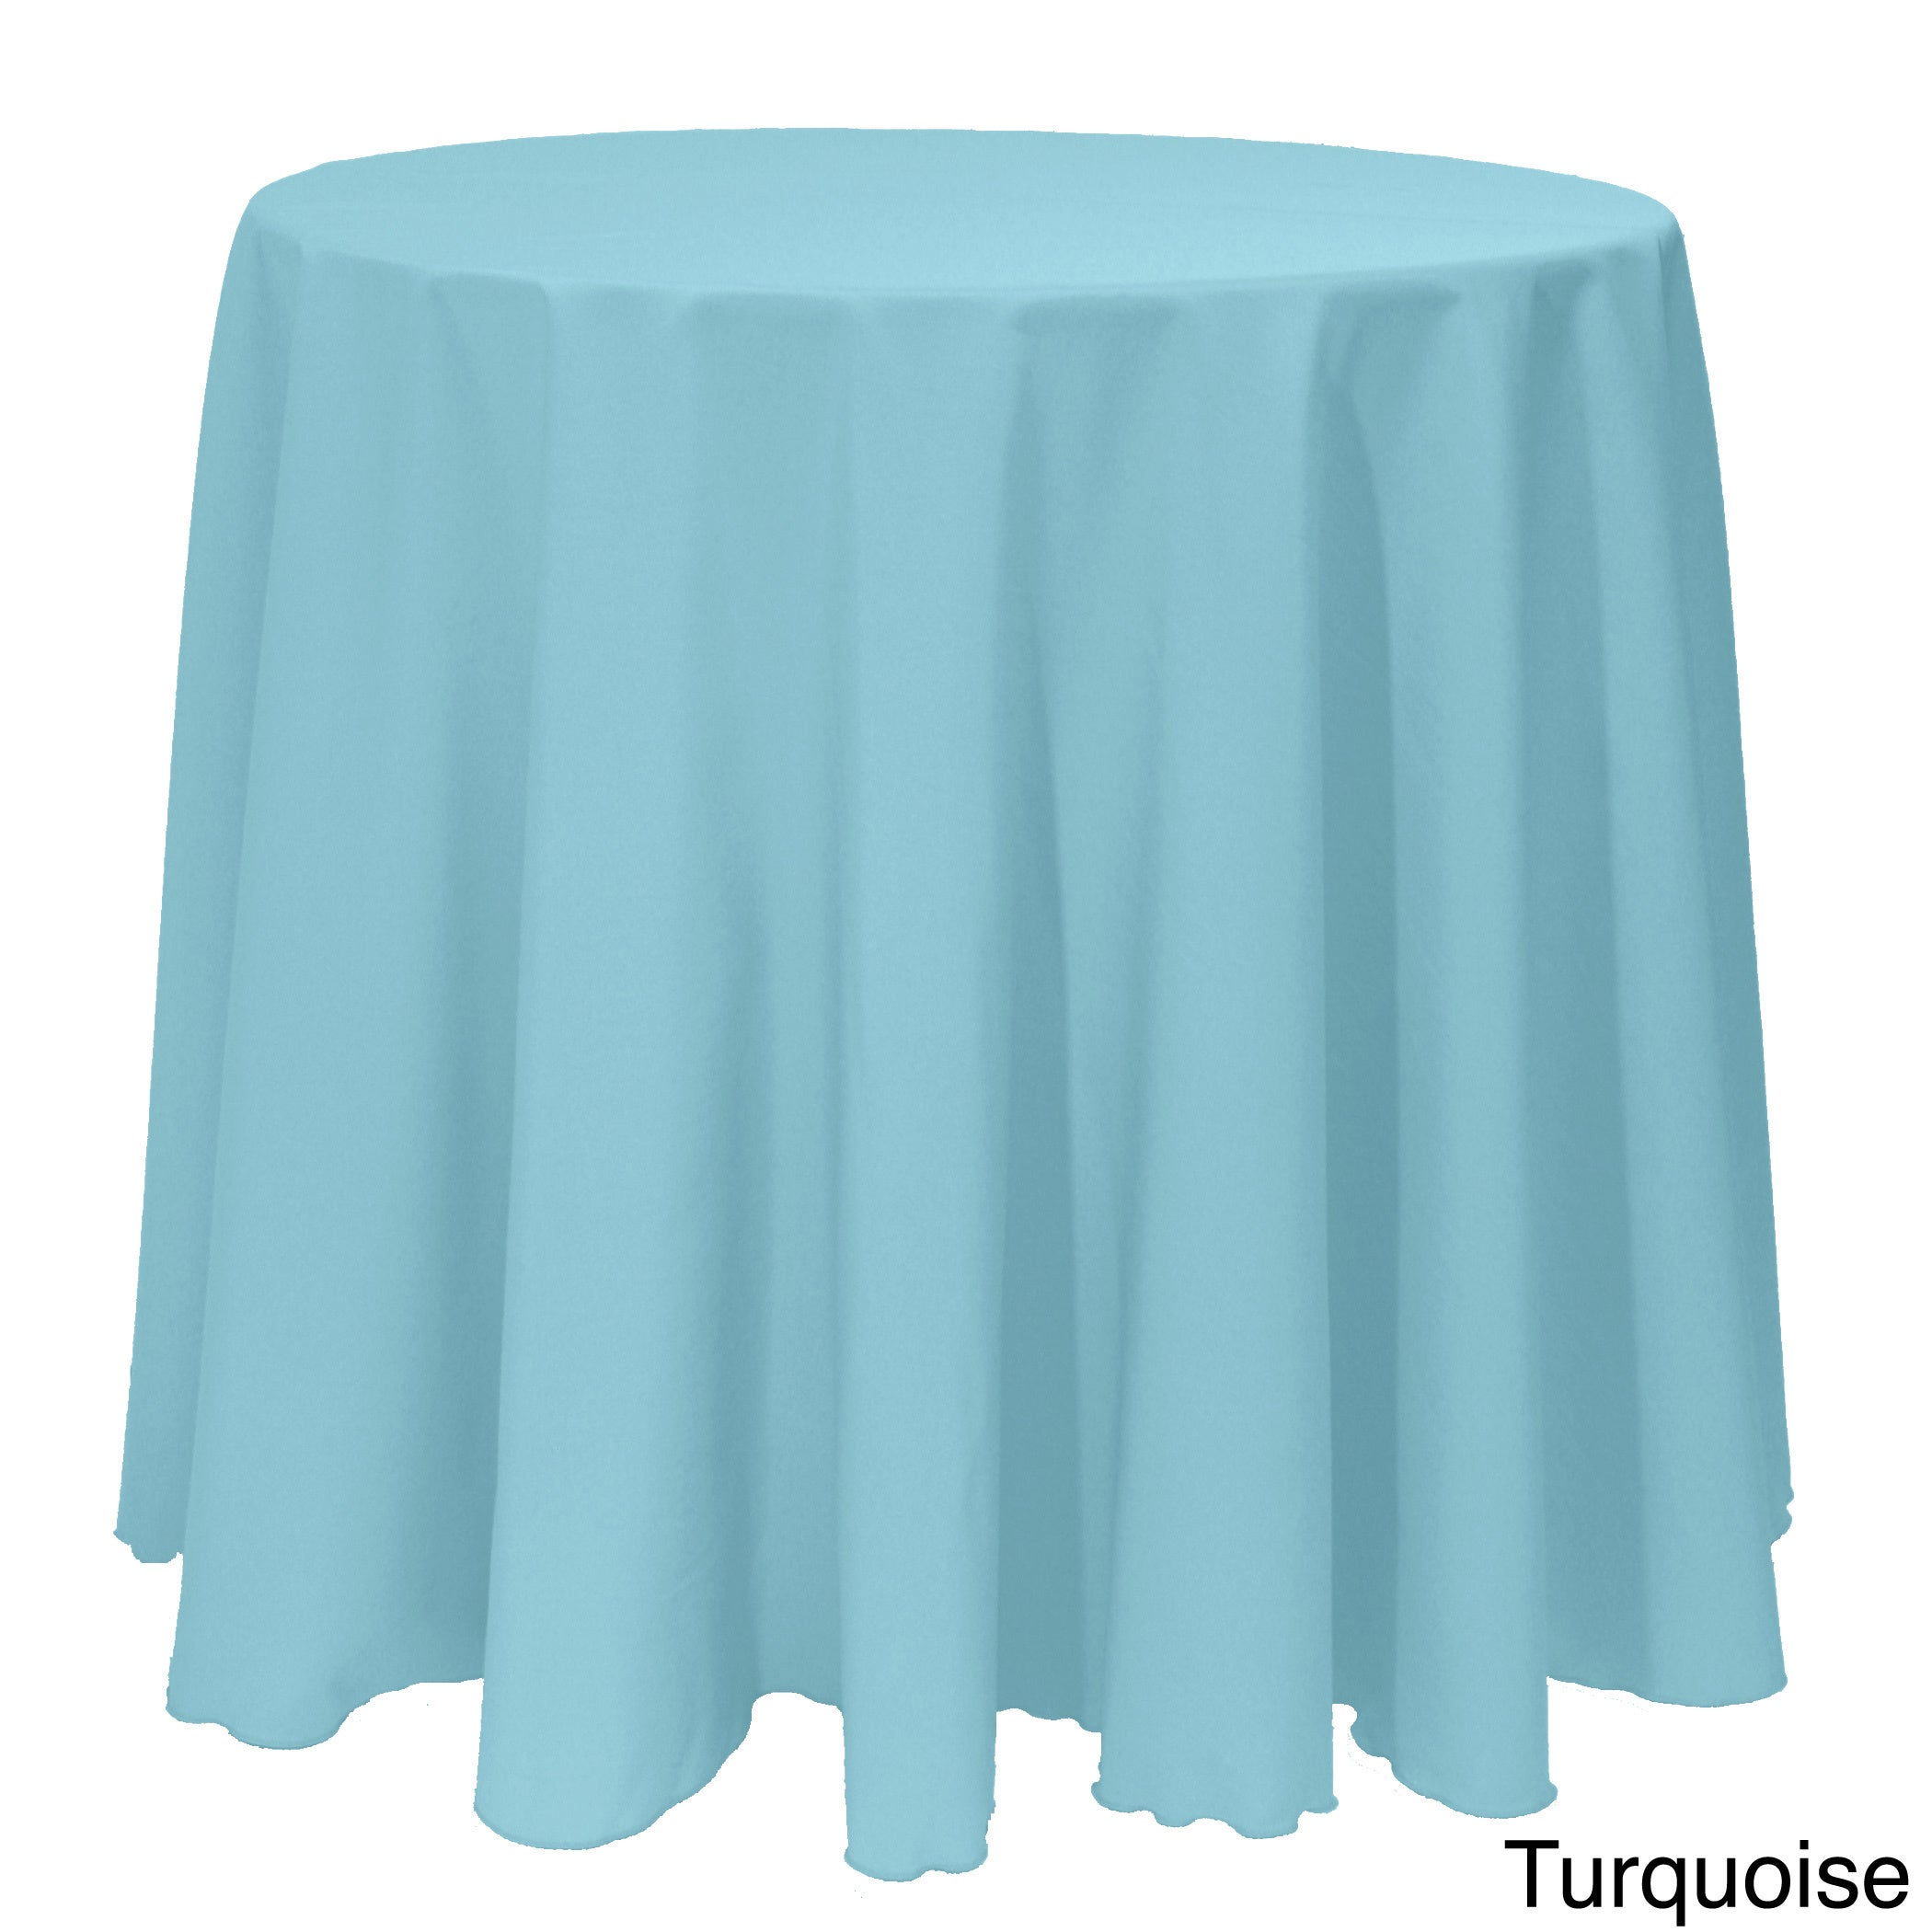 Shop Solid Color 108 Inches Round Colorful Tablecloth   108   Free Shipping  On Orders Over $45   Overstock.com   10222594